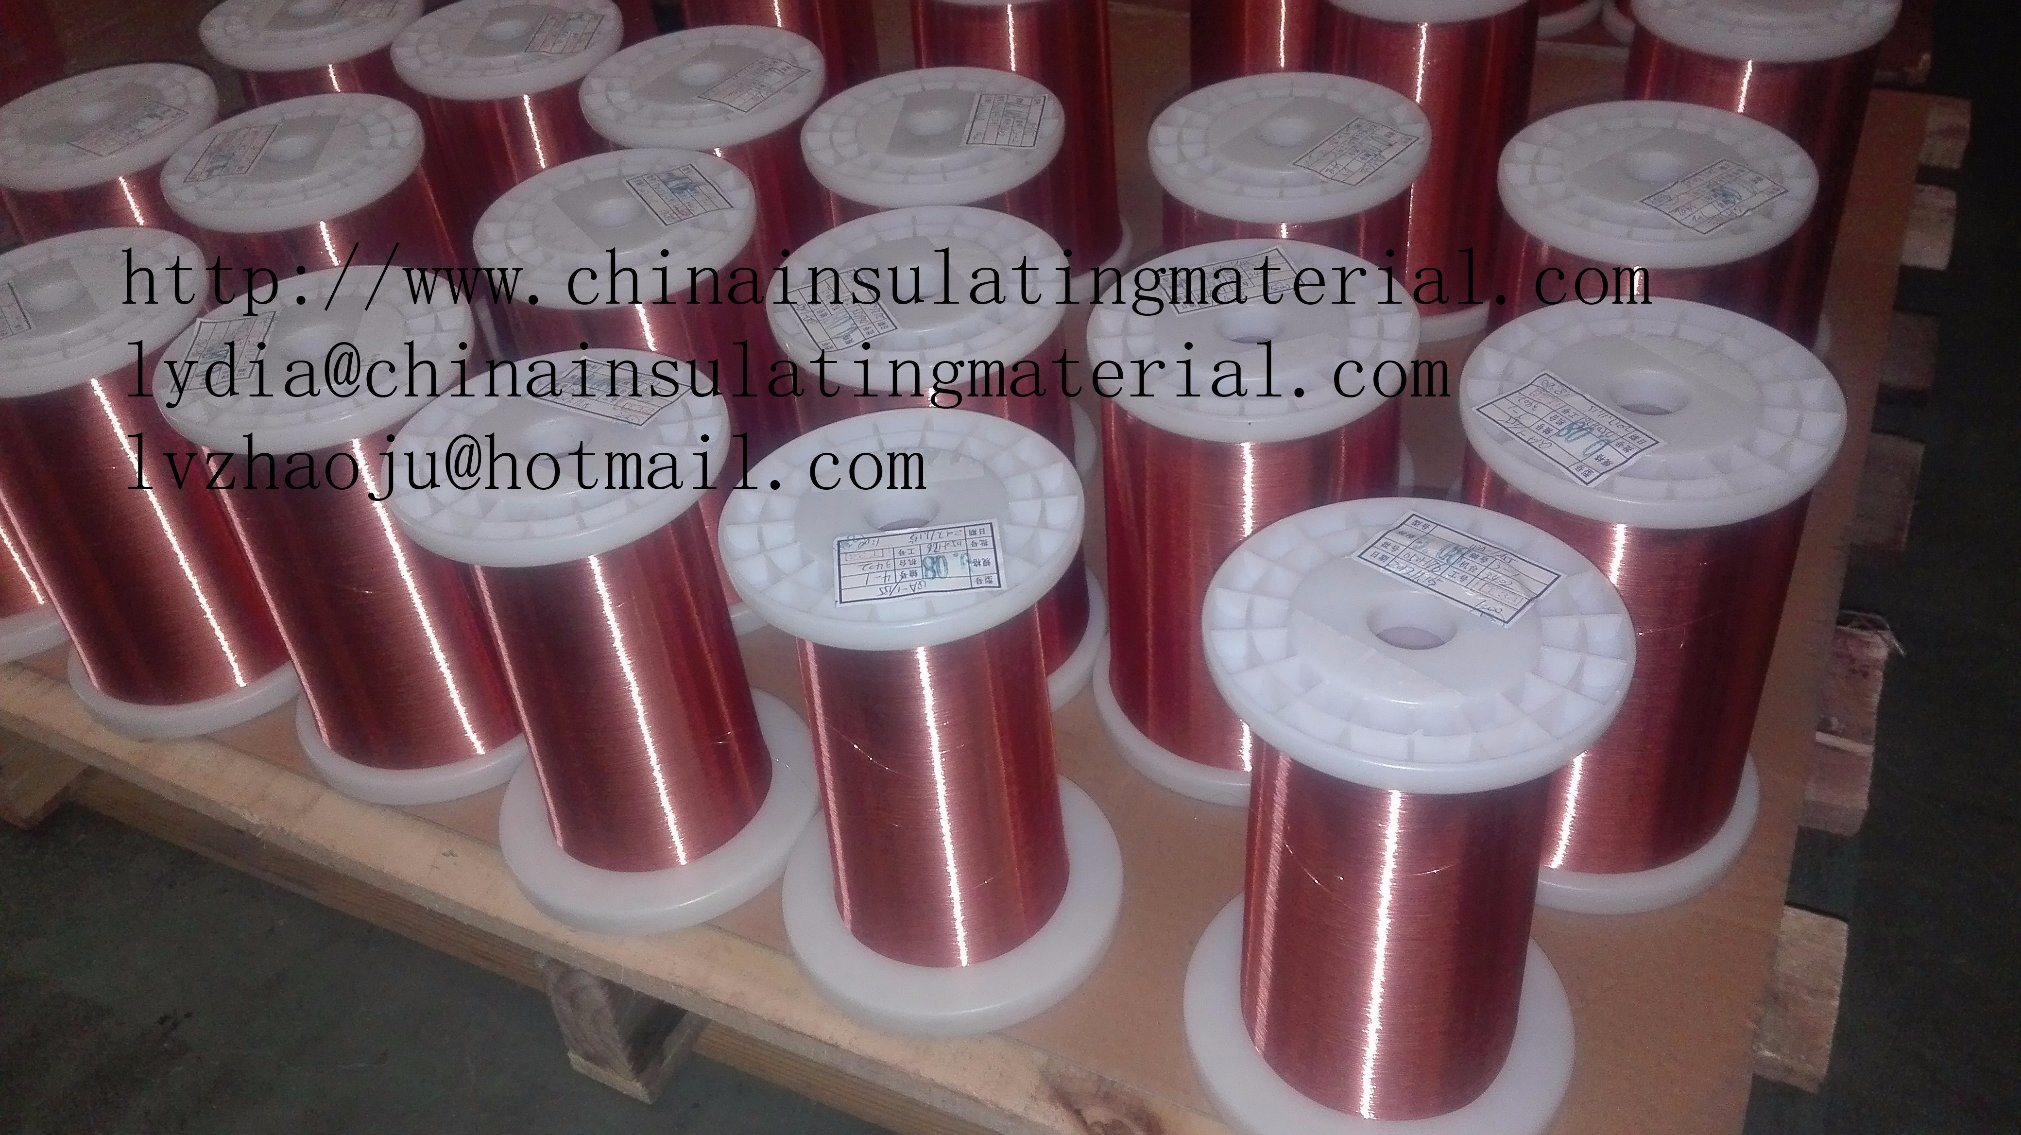 China Winding Wire Manufacturers Suppliers Made In Copper Electric Ei Aiw 200 Power Wires Com